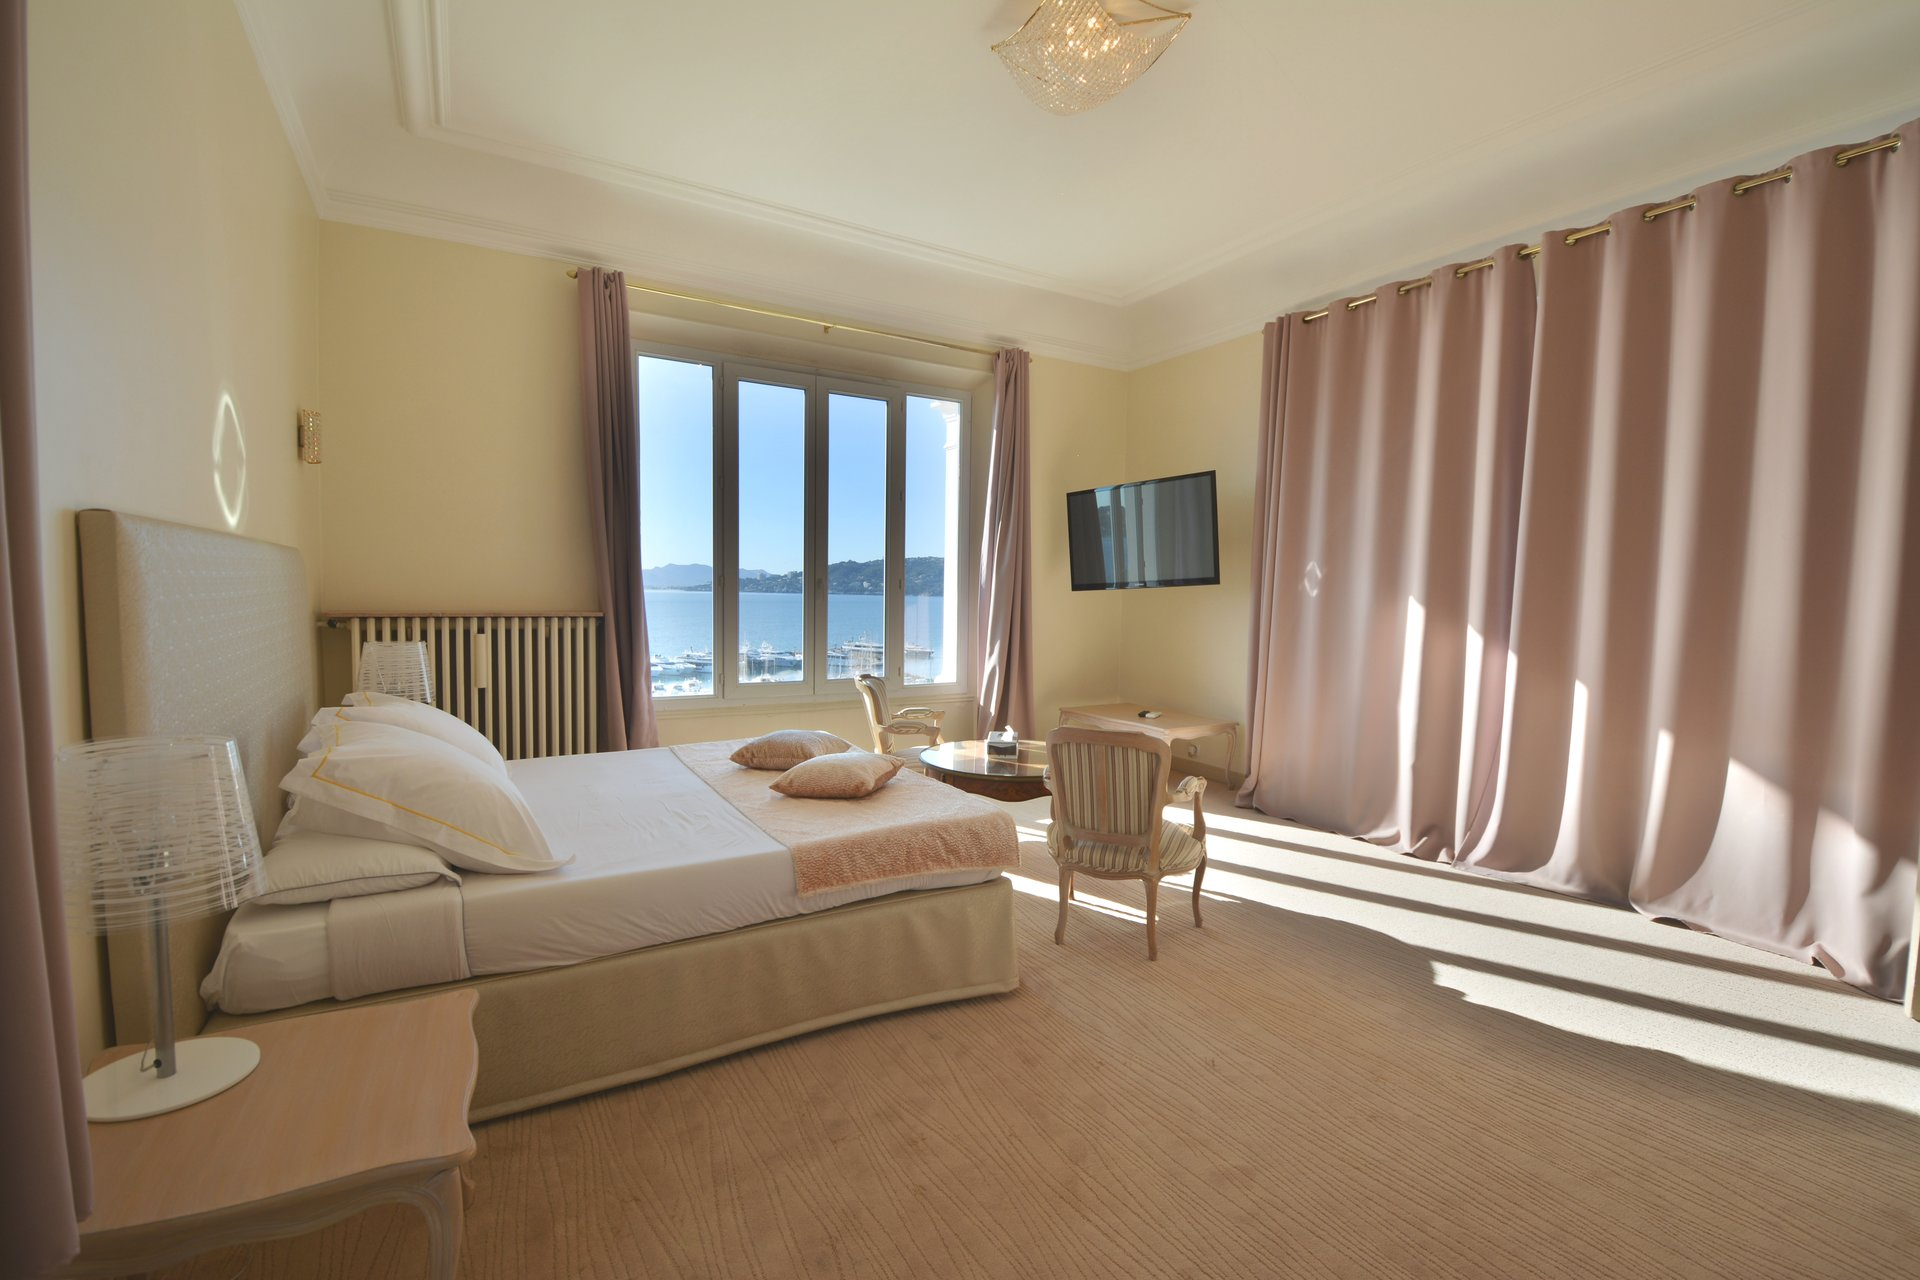 Apartment Belle Epoque - Top floor - Sea views